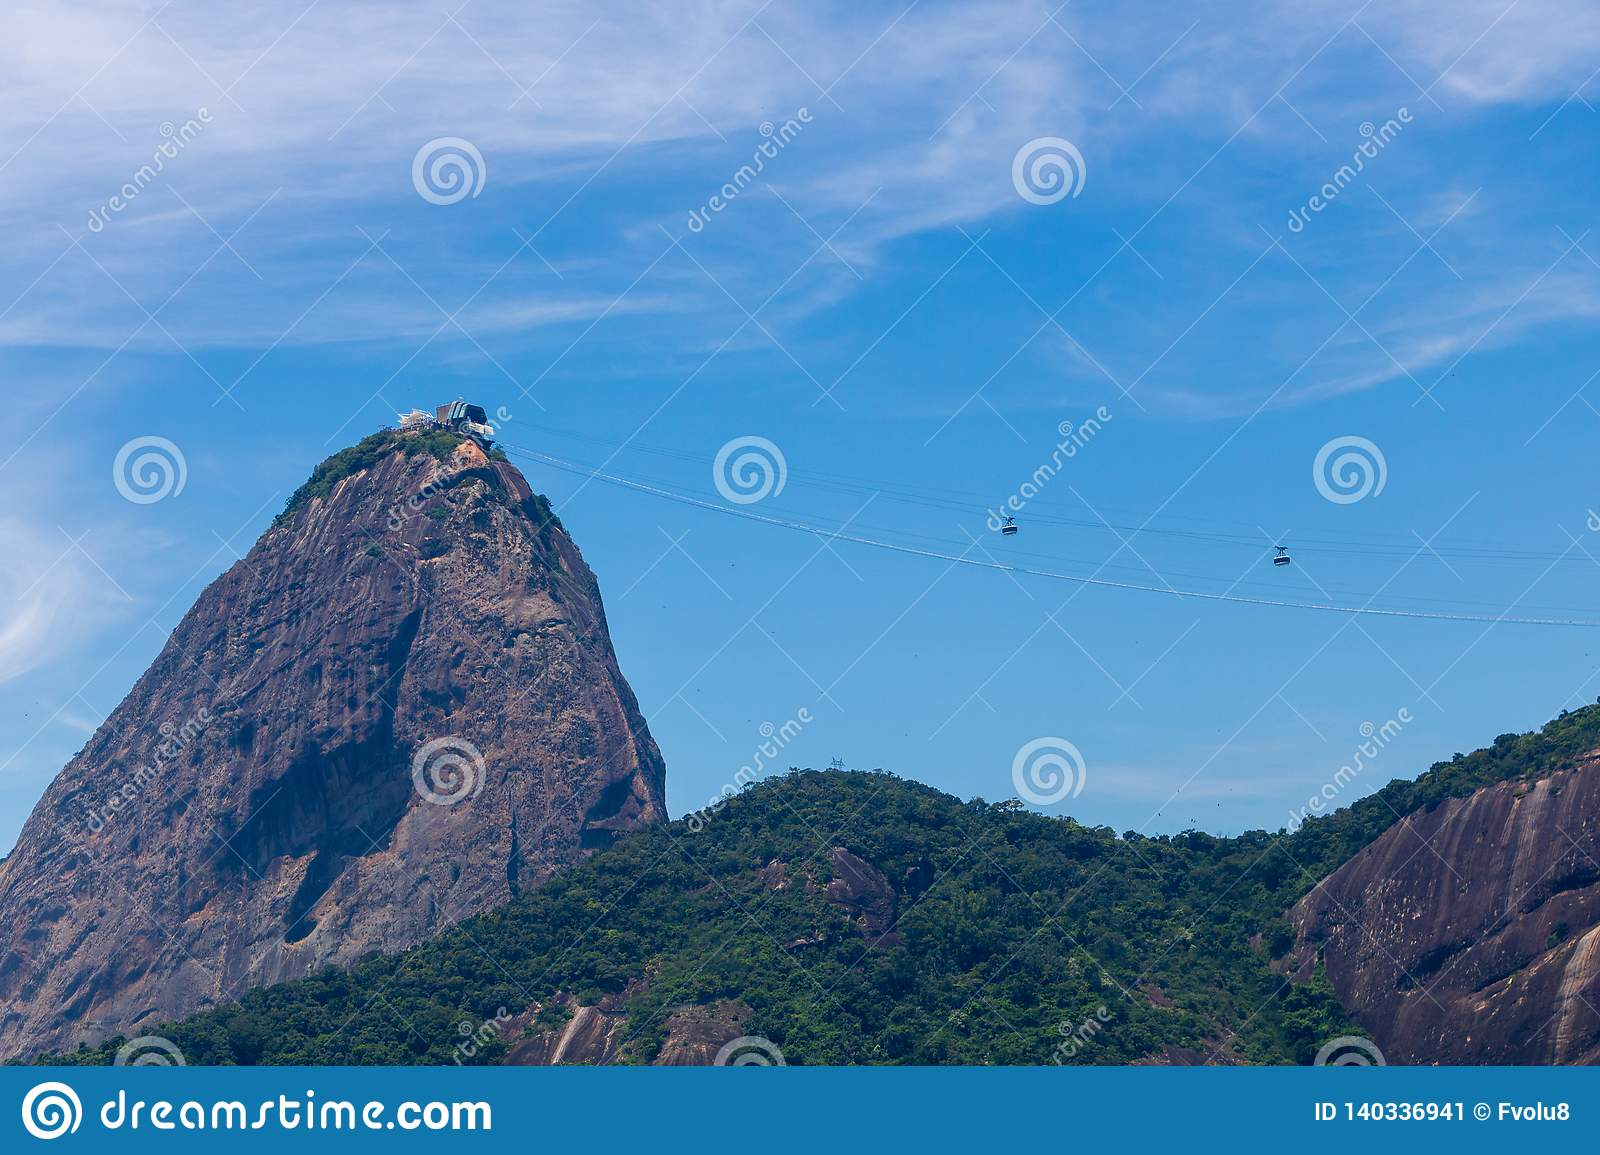 Beautiful panoramic view of the Sugar Loaf mountain in Rio de Janeiro, Brazil, on a beautiful and relaxing sunny day with blue sky